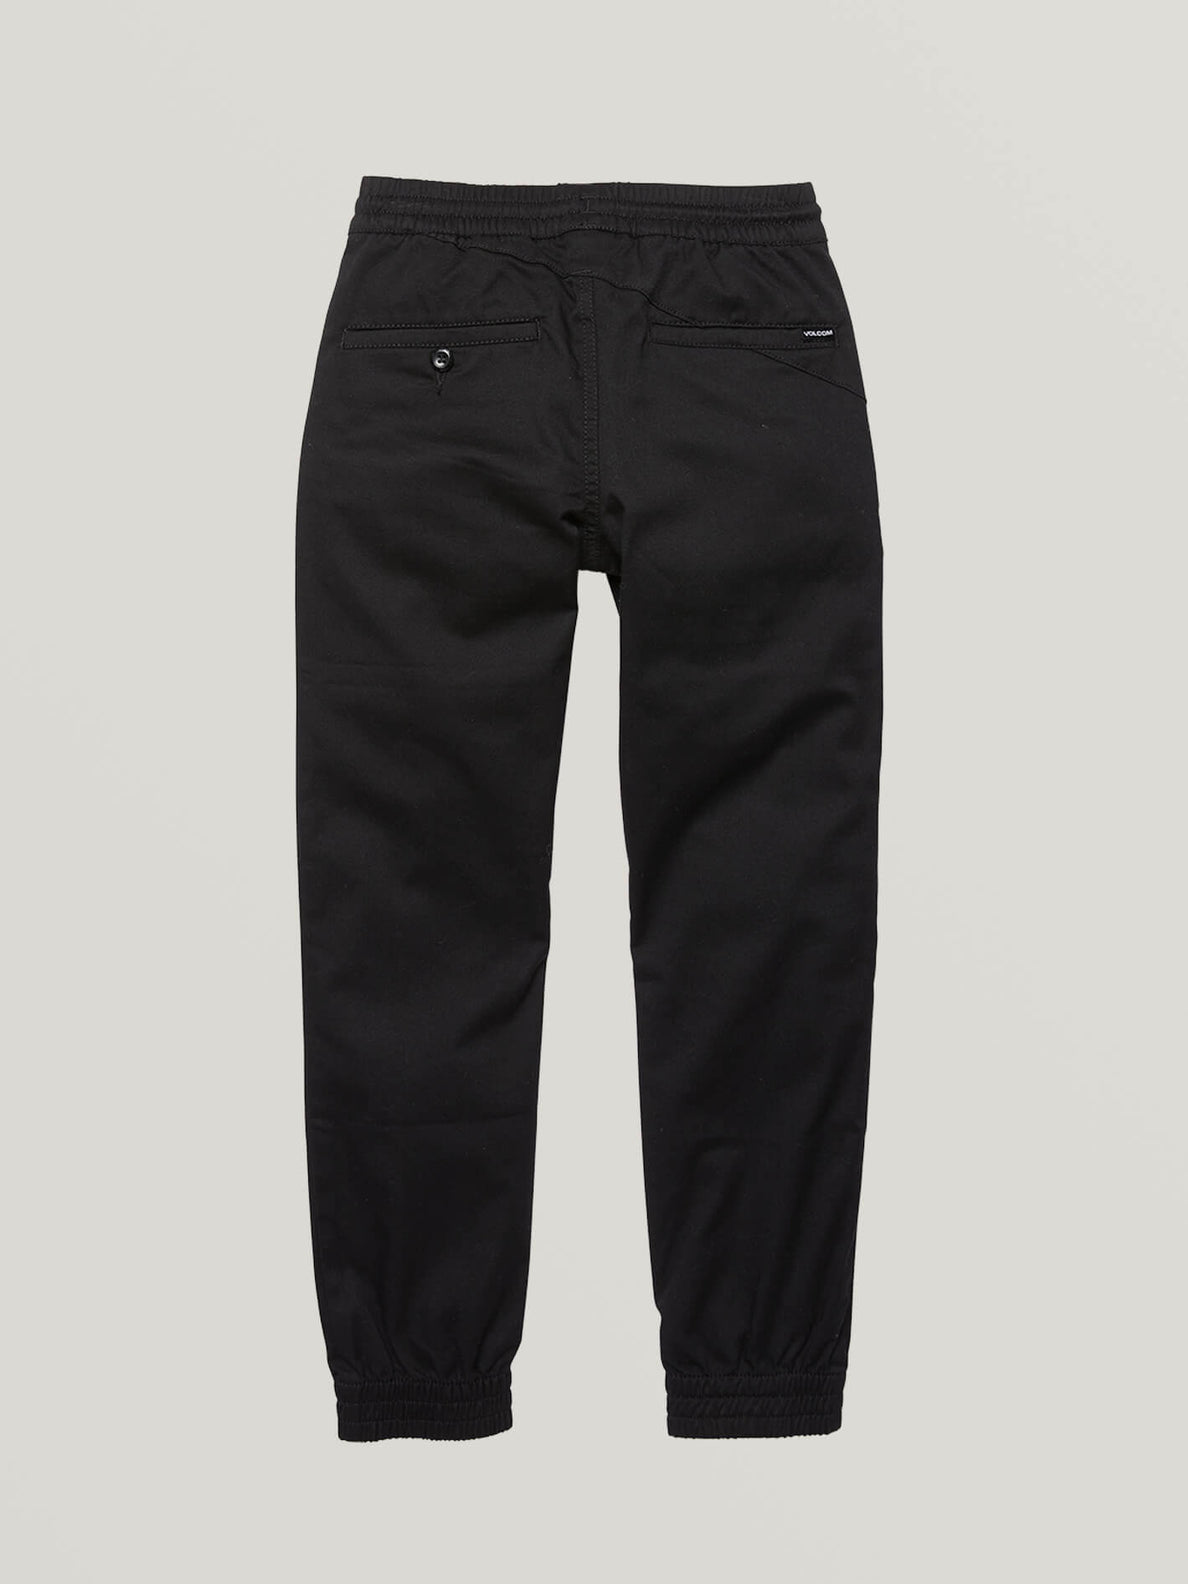 Big Boys Frickin Slim Jogger Pants In Black, Back View